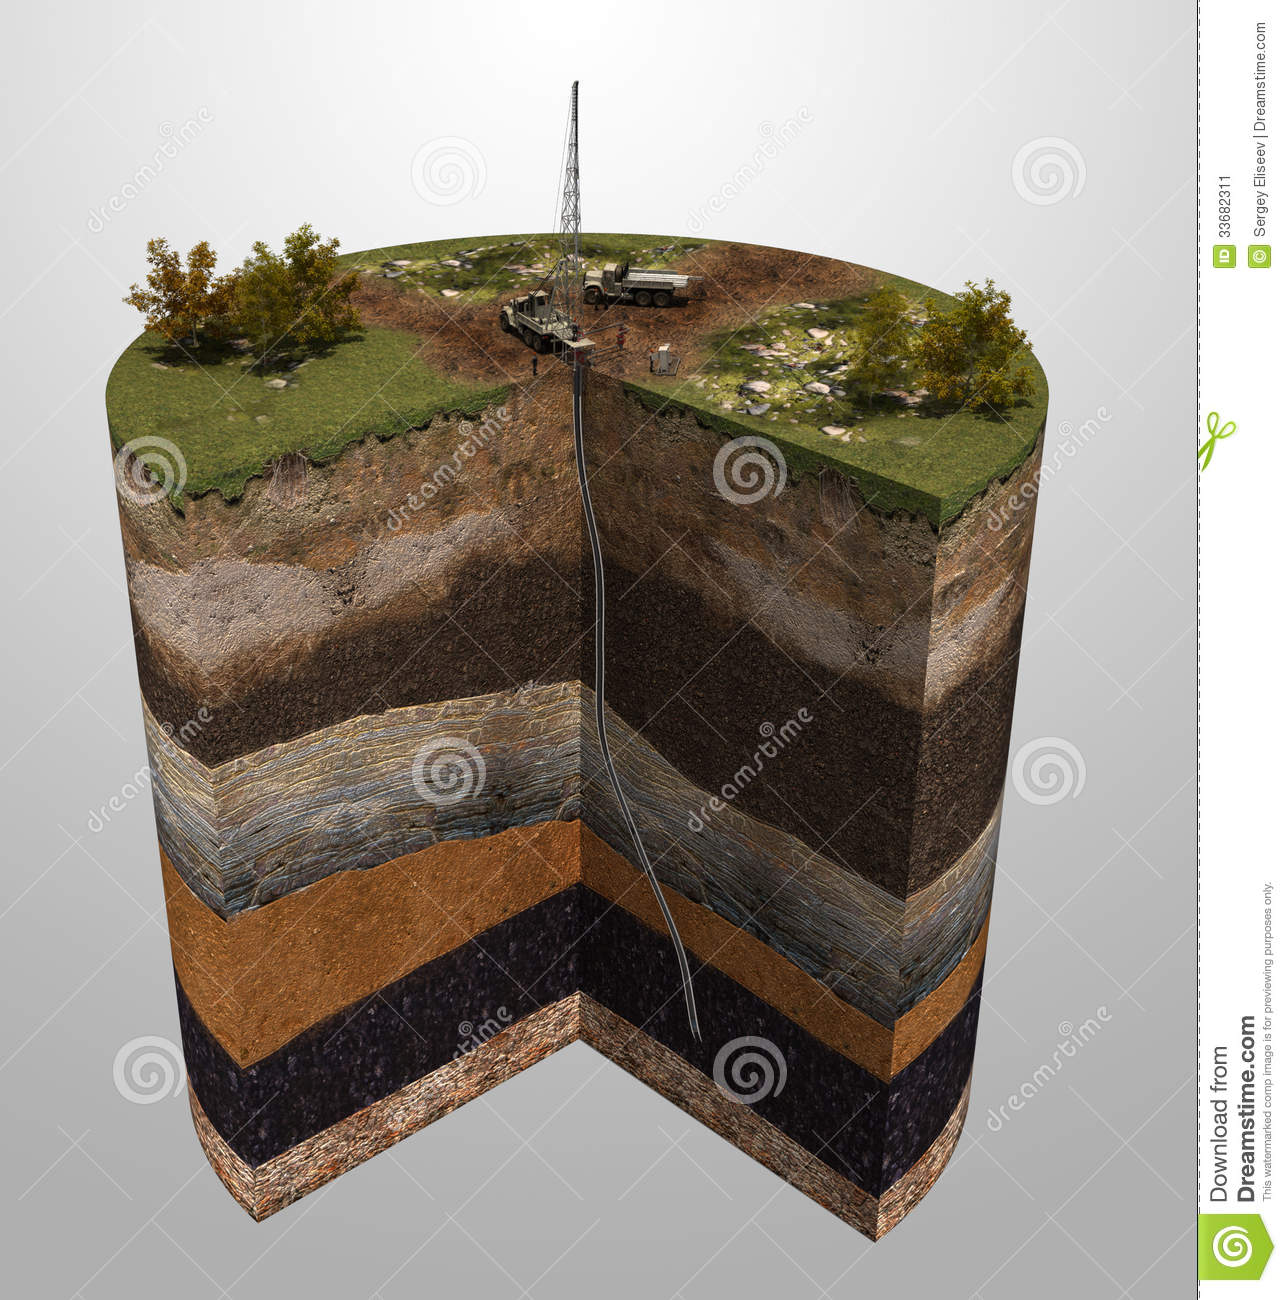 Geological Exploration Of Oil And Gas Production Stock Image.